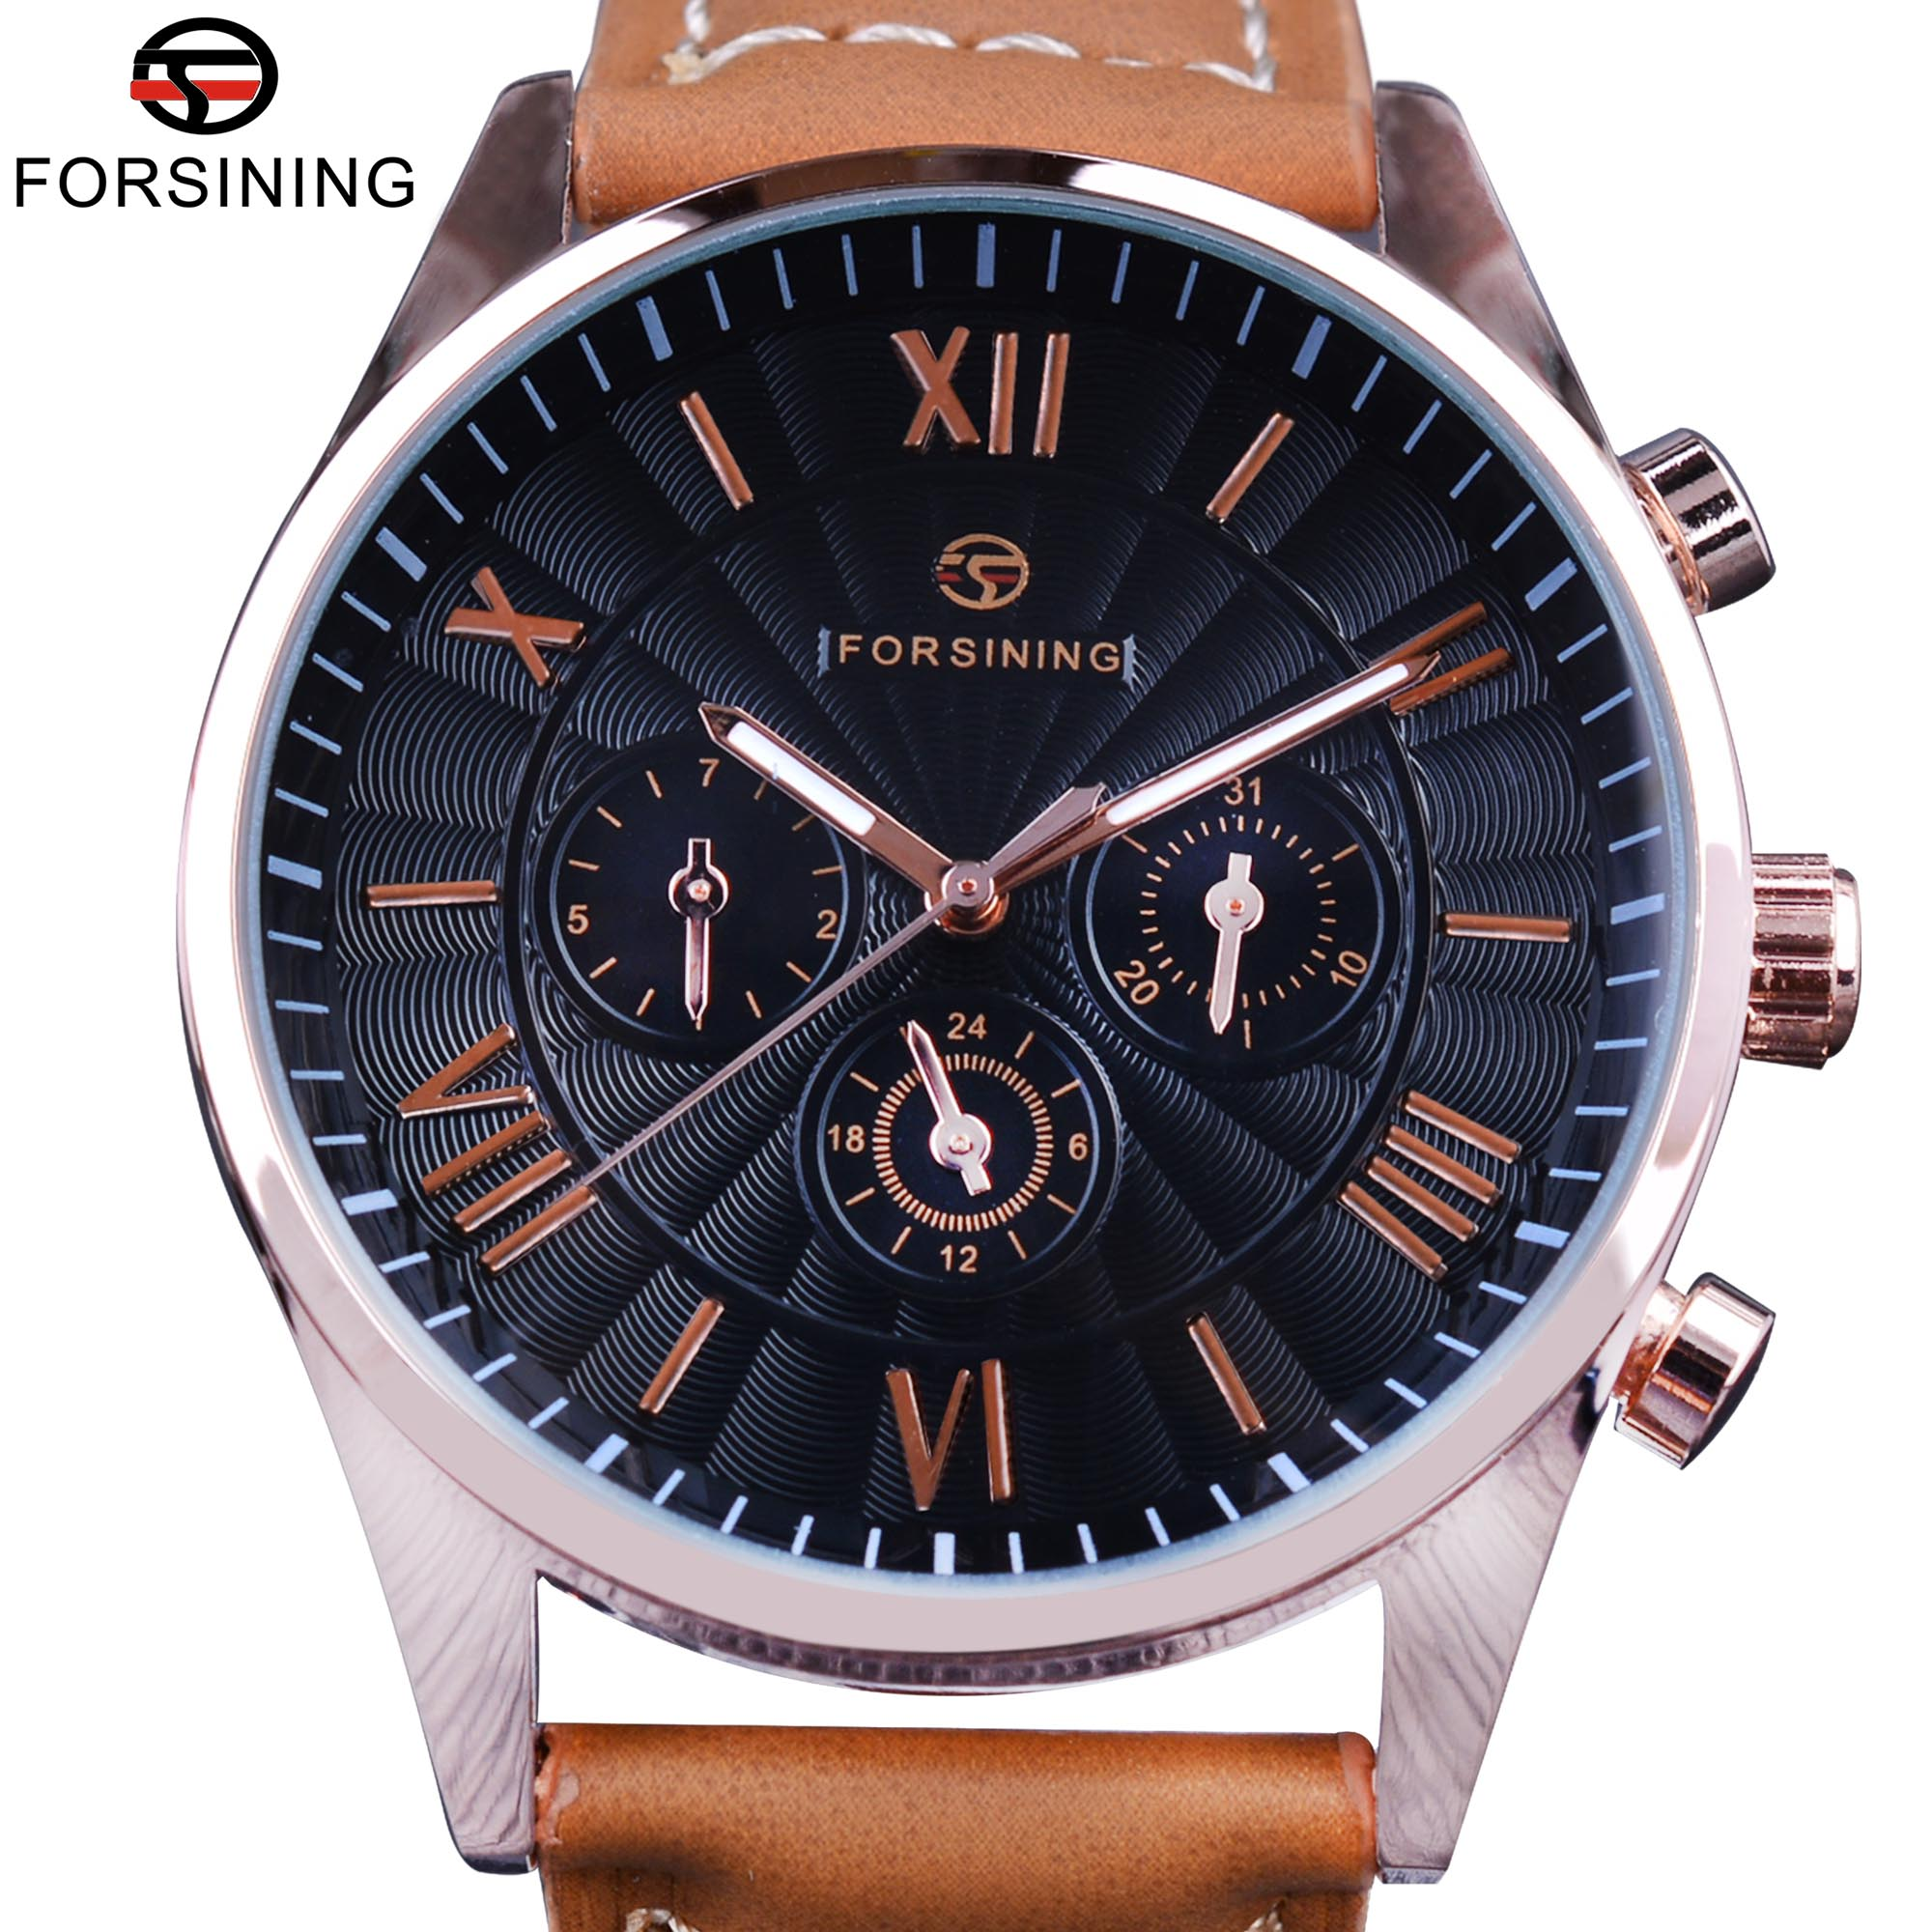 Forsining 2017 Fashion Swirl Dial Design 3 Dial 6 Hands Genuine Leather Mens Watches Top Brand Luxury Display Automatic Watch